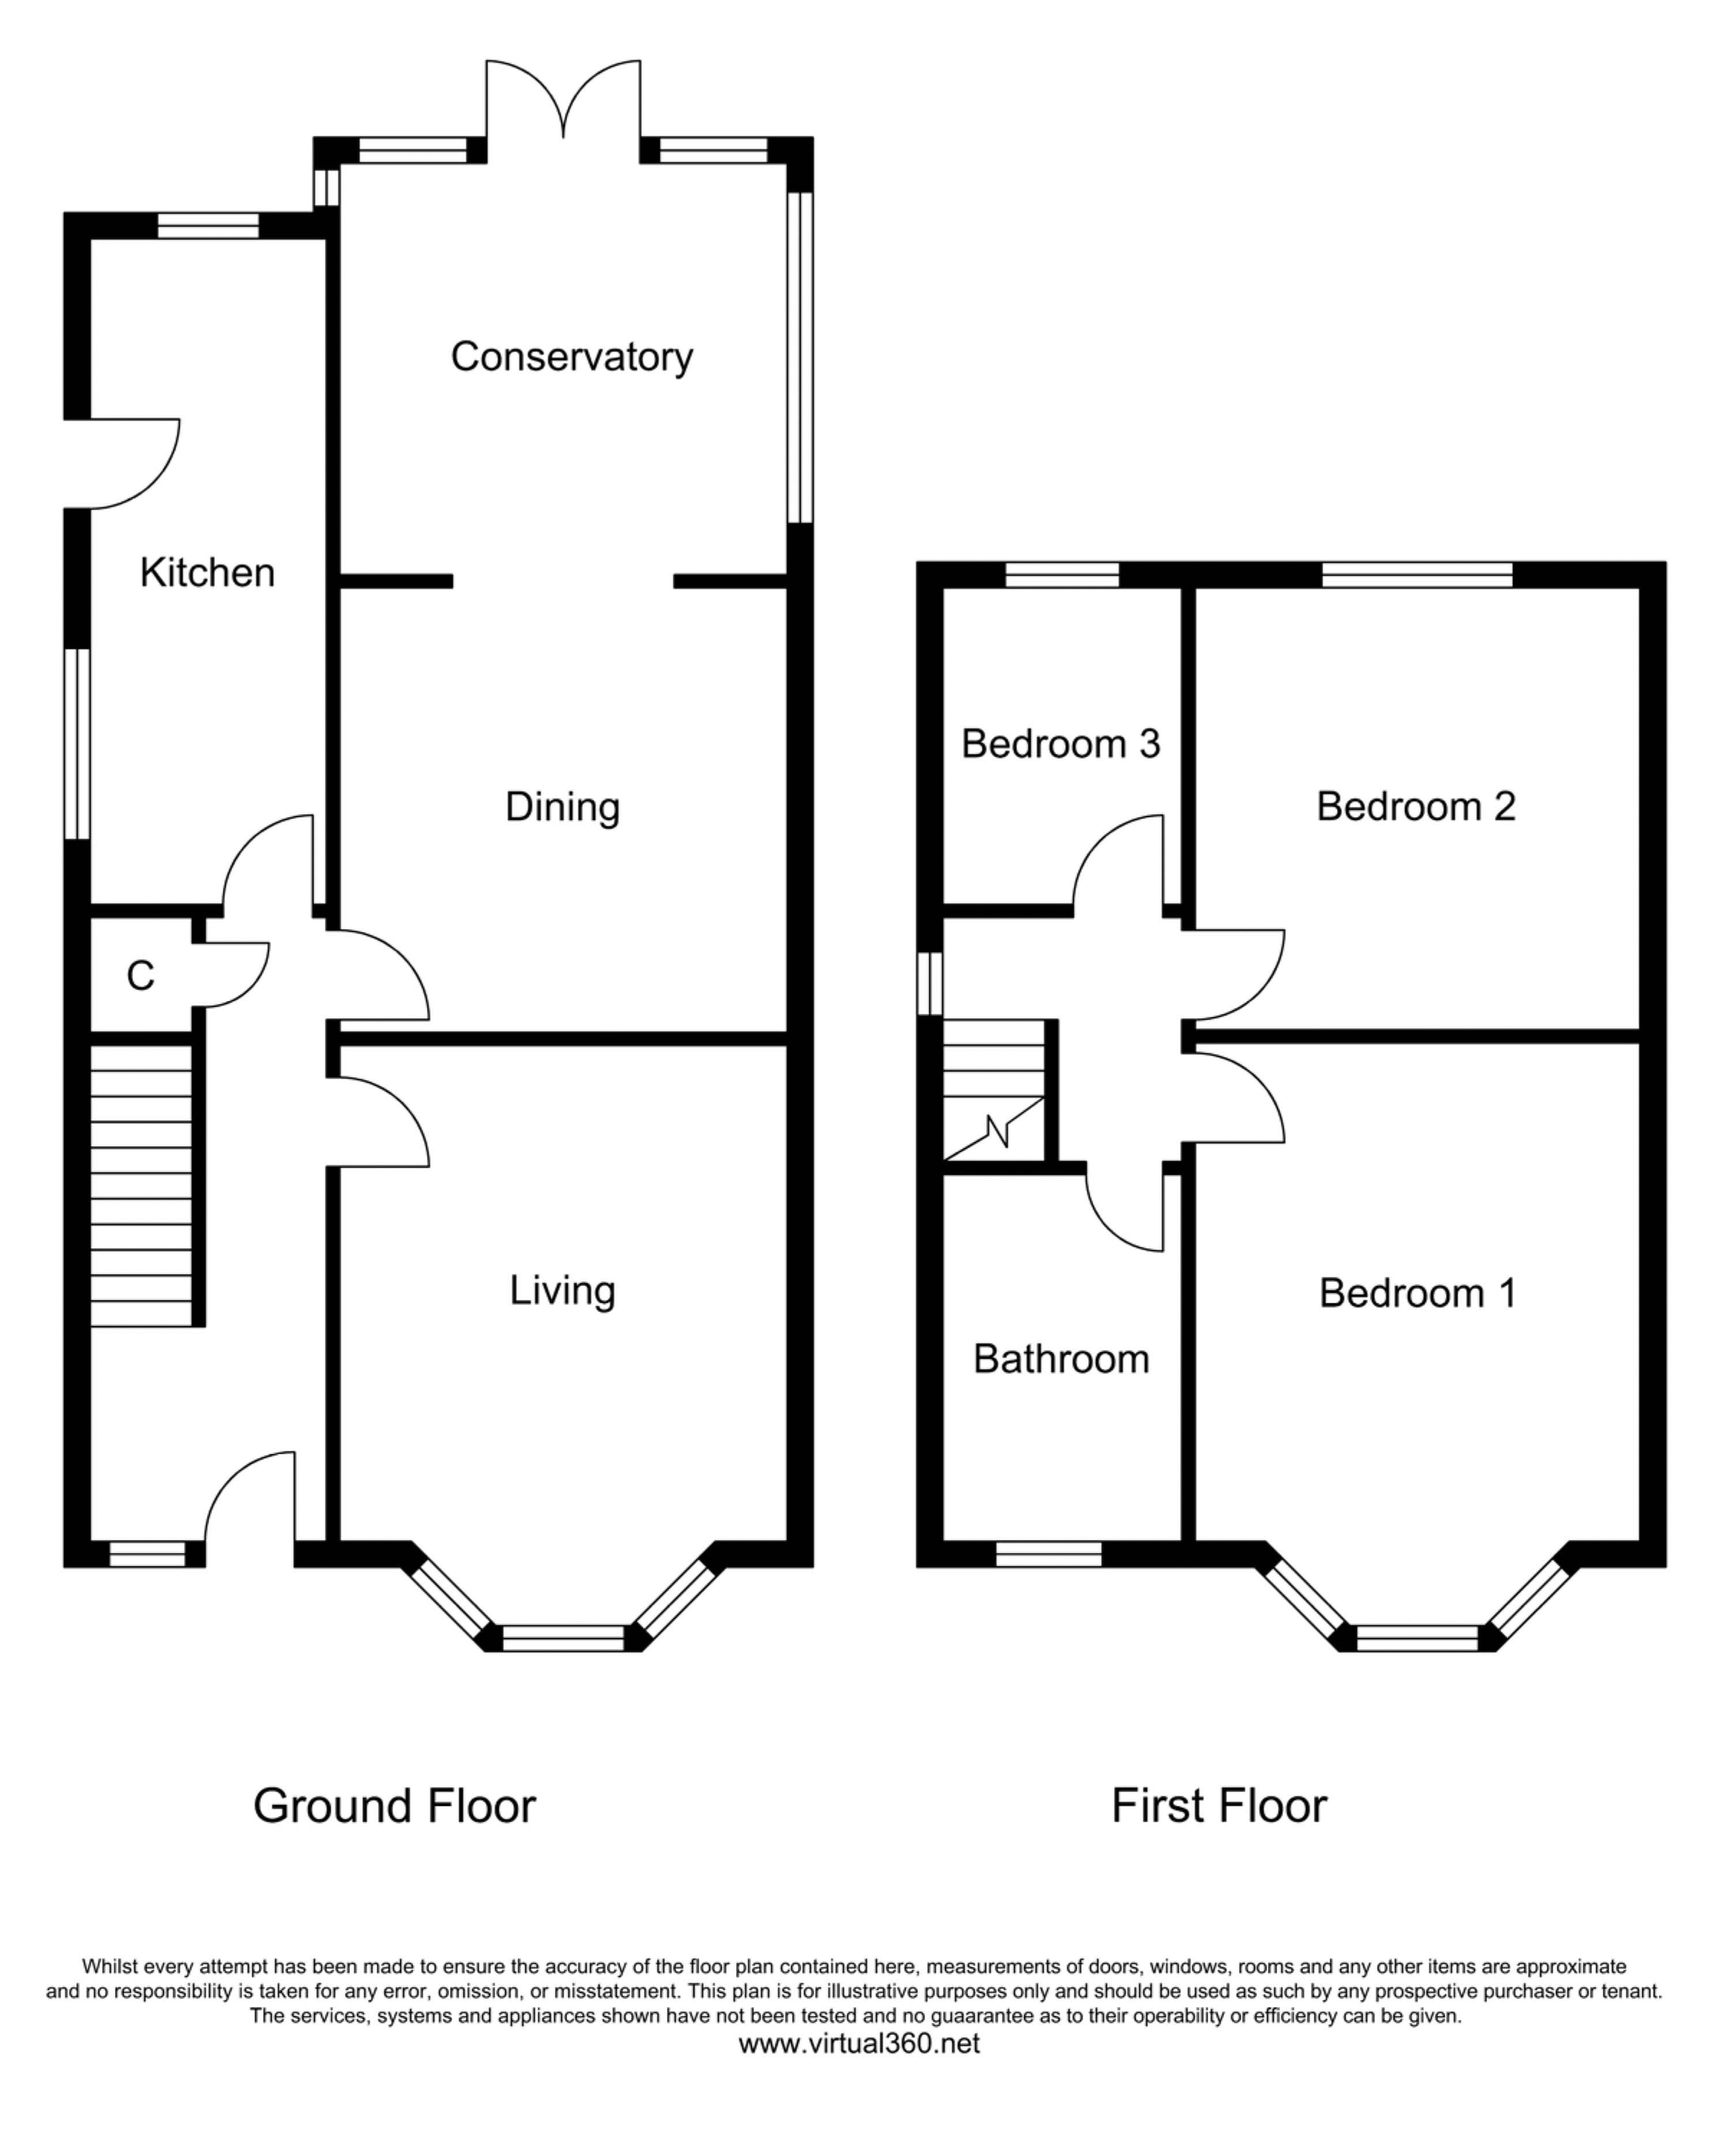 Victoria Road, Salford, Greater Manchester floor plan